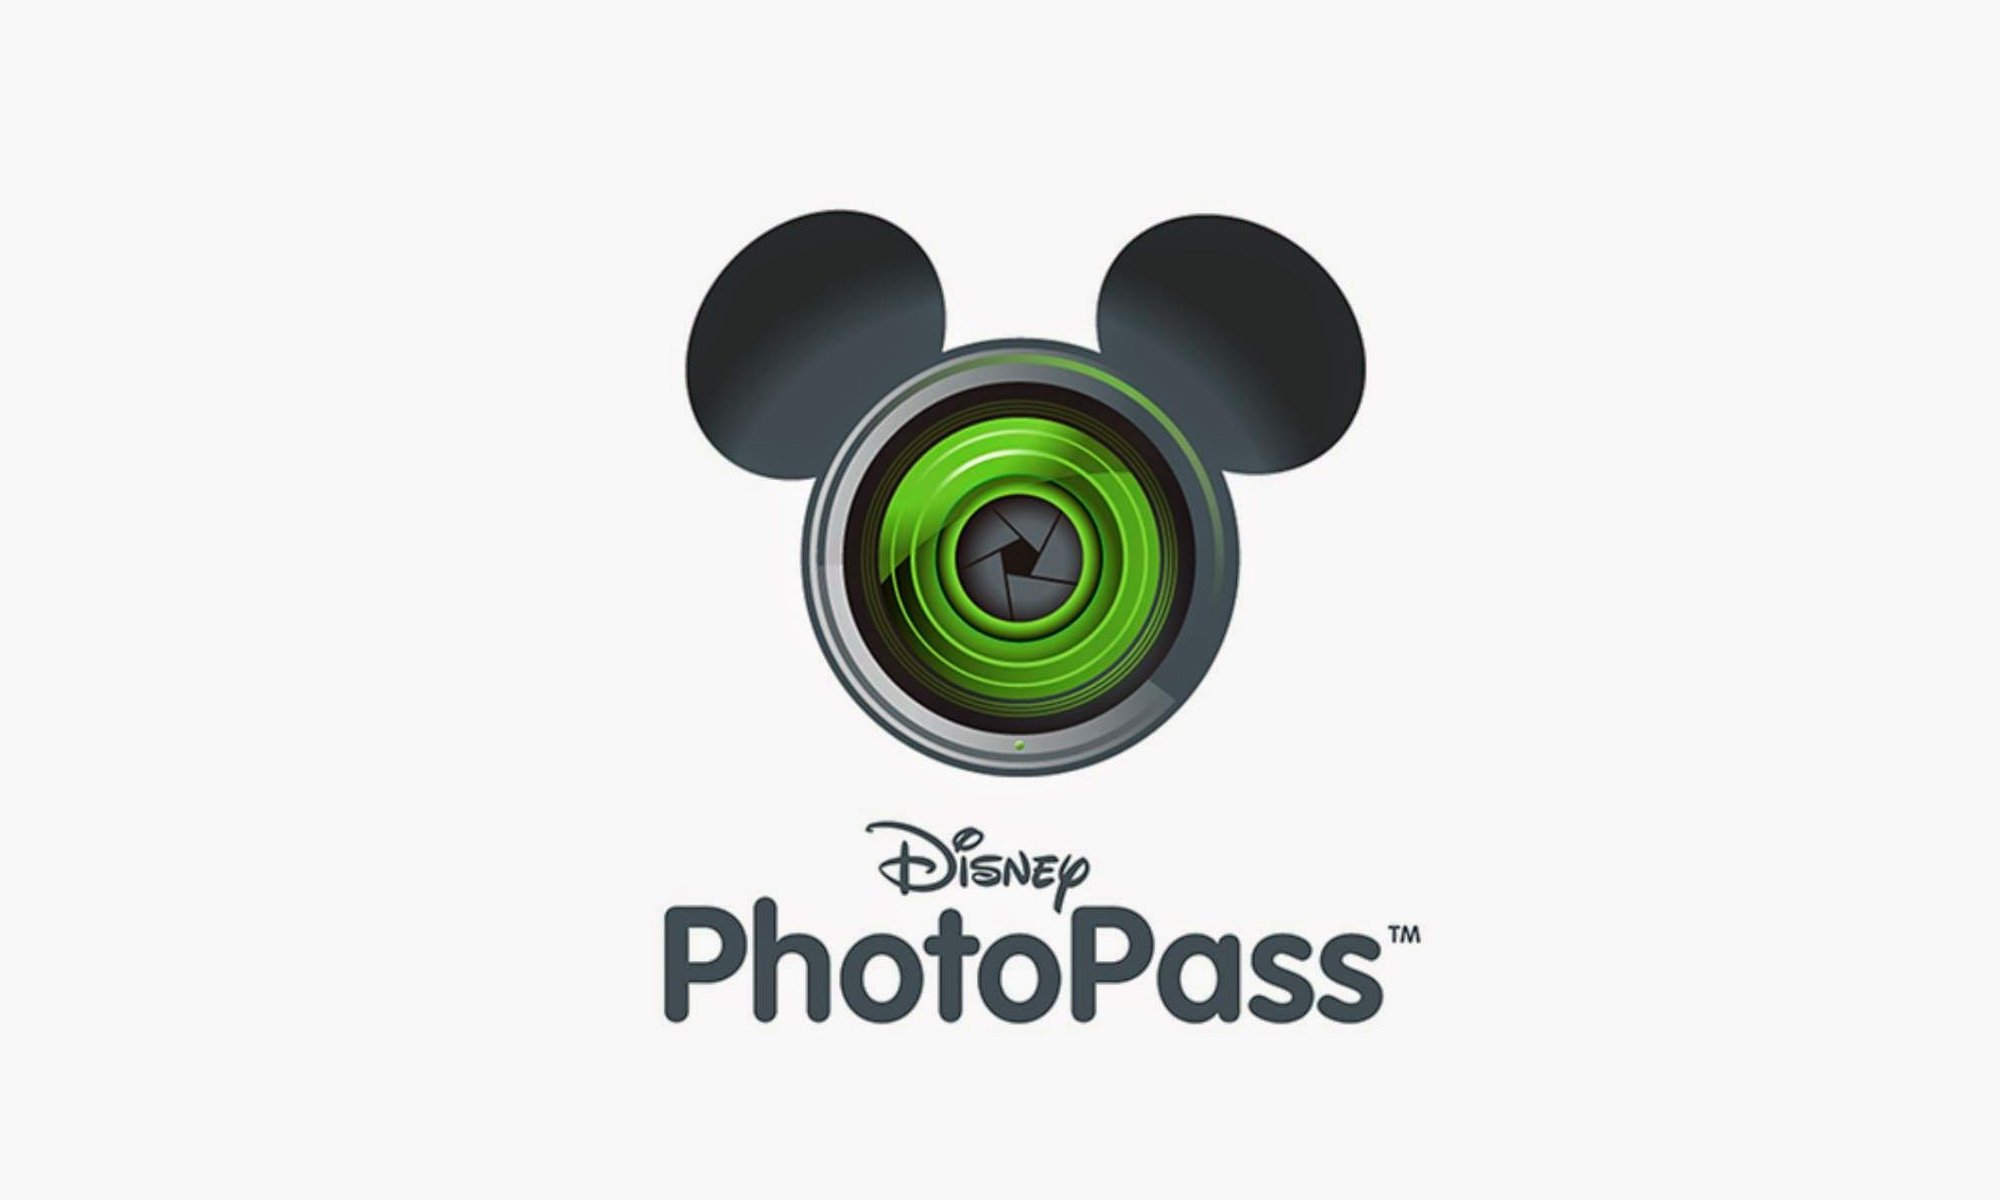 Disney Shopping Mall – Disney Shopping Discounts. LAST UPDATE: 10/16/18 If you want to find Disney shopping discounts or learn to save on almost anything Disney, this is the place!Here on exsanew-49rs8091.ga you'll find exsanew-49rs8091.ga coupon codes and discounts for many other online retailers that sell Disney merchandise.. You'll also find other Disney product promotions and coupons .